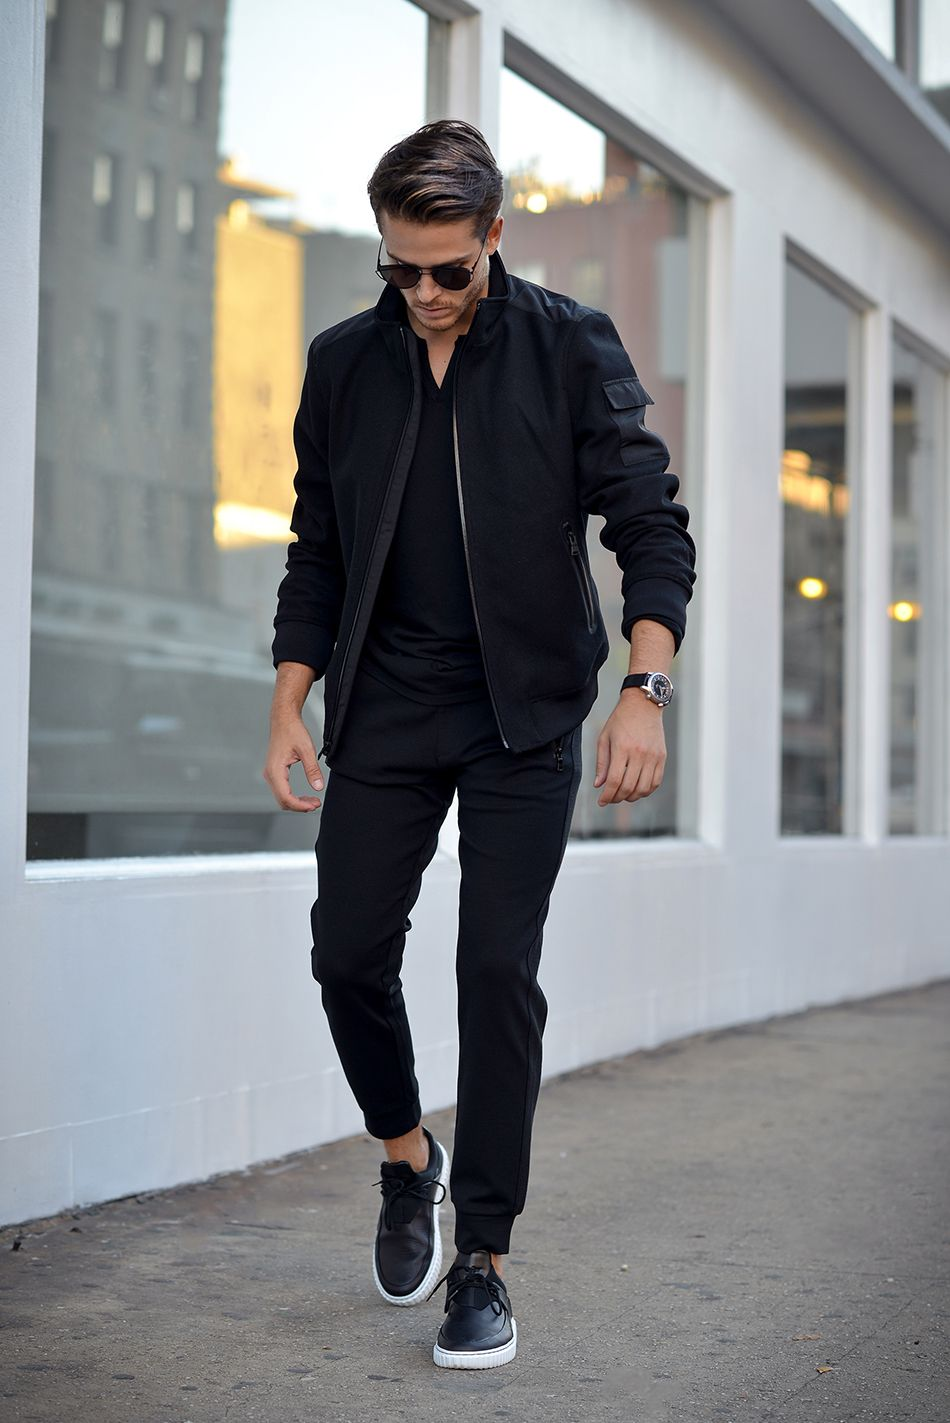 Black On Black Men 39 S Casual Outfit Bomber Jacket Shop Menswear At